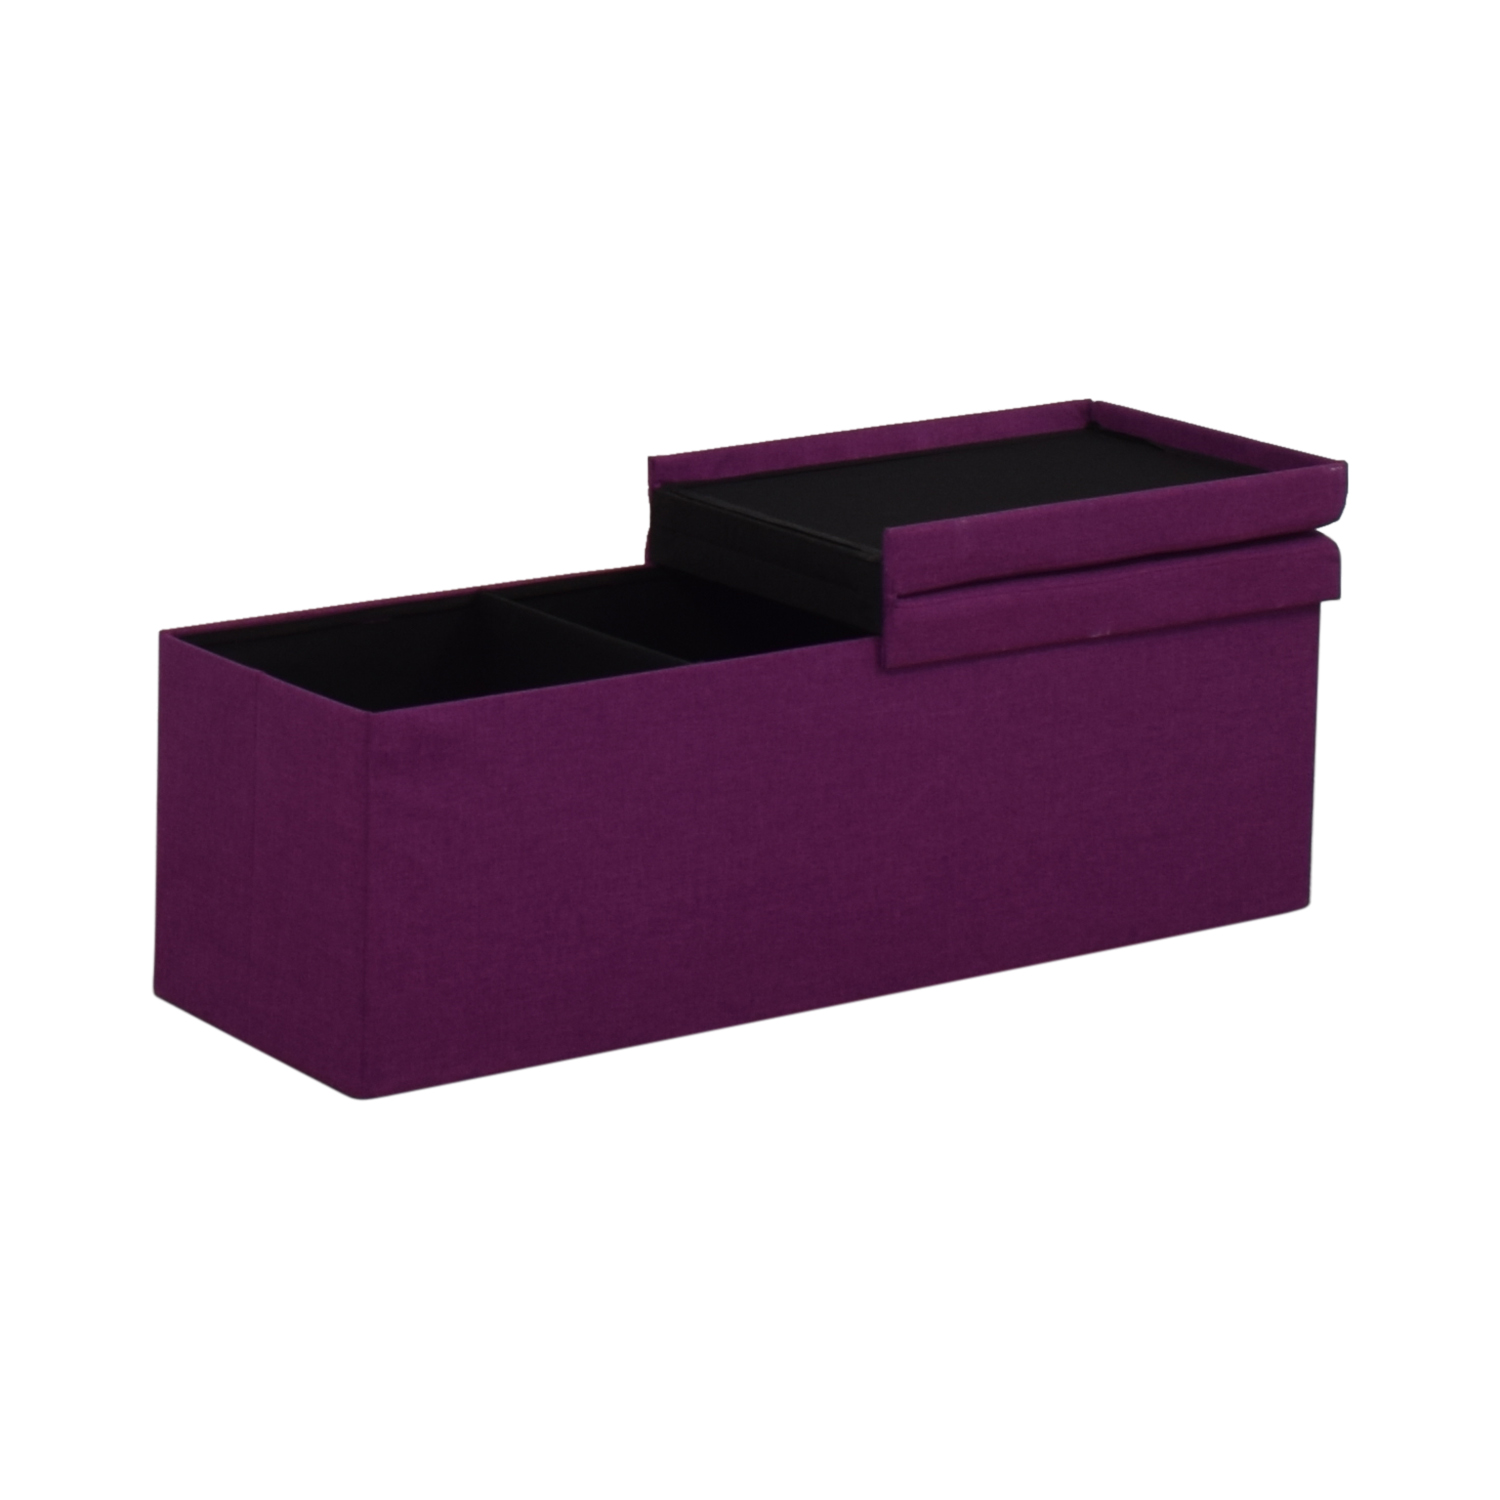 Magenta Tufted Storage Bench / Benches